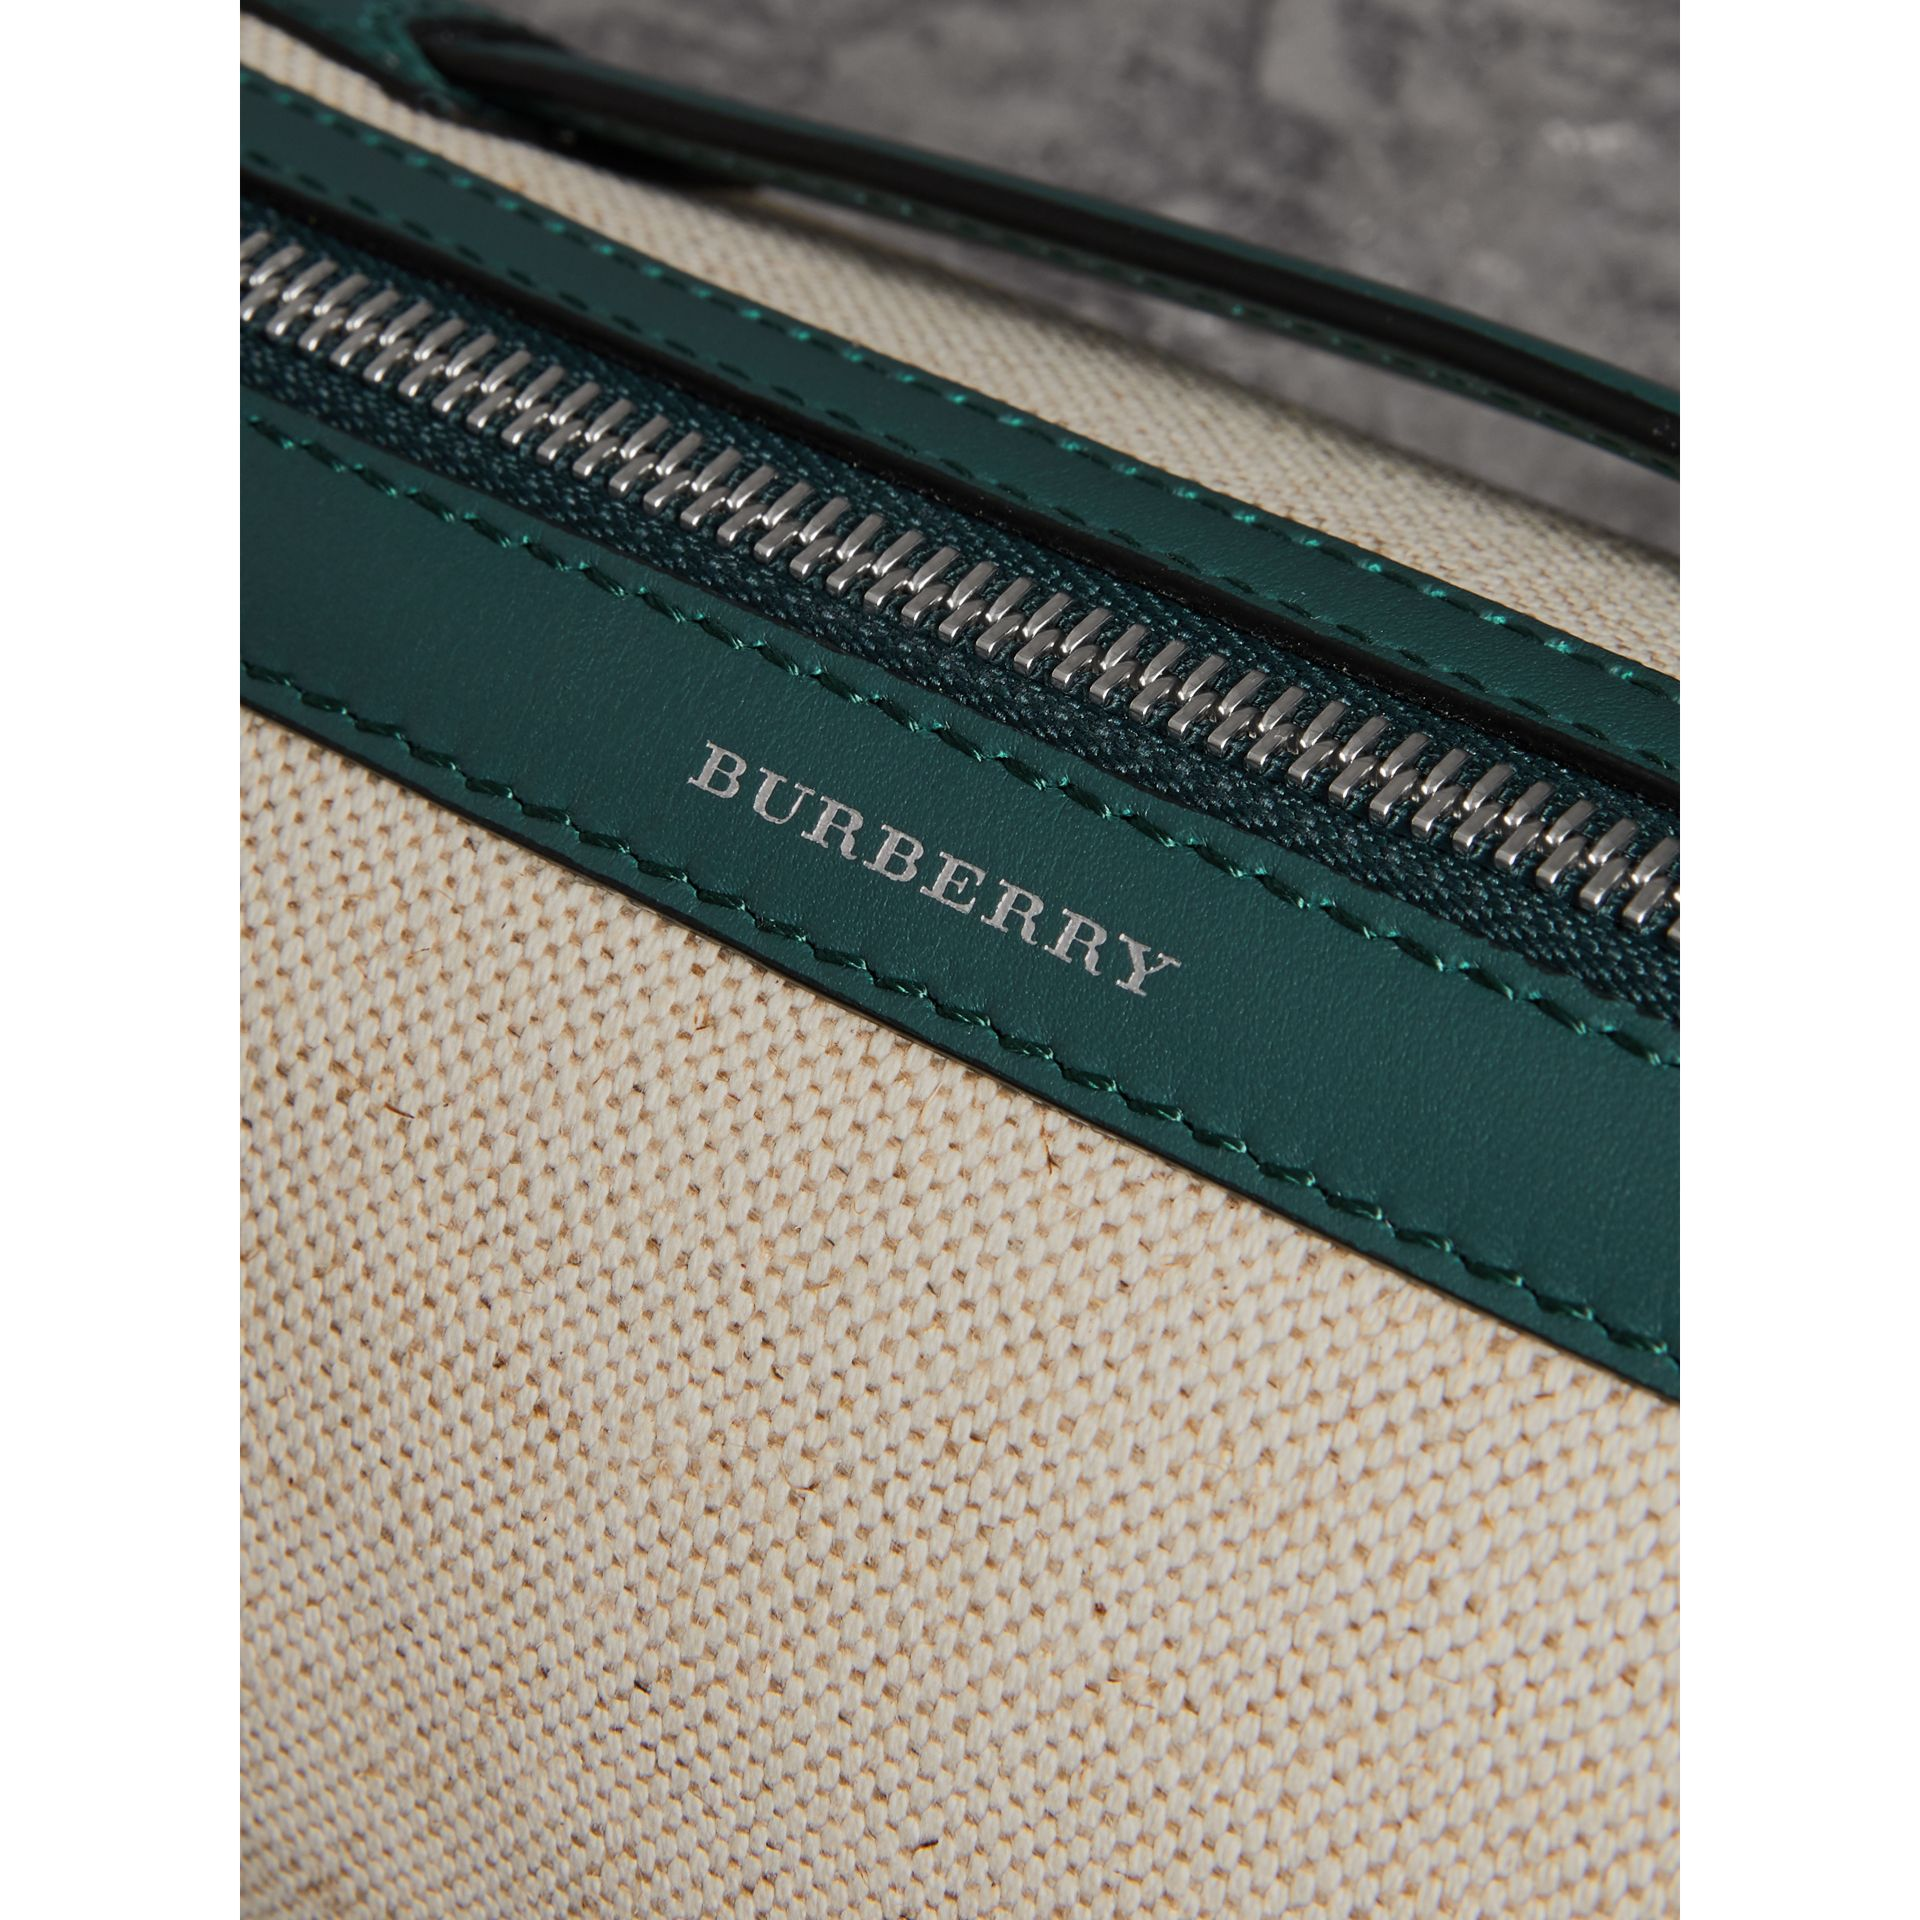 Sac The Barrel en cuir, coton et lin (Cyan Foncé) - Femme | Burberry - photo de la galerie 1